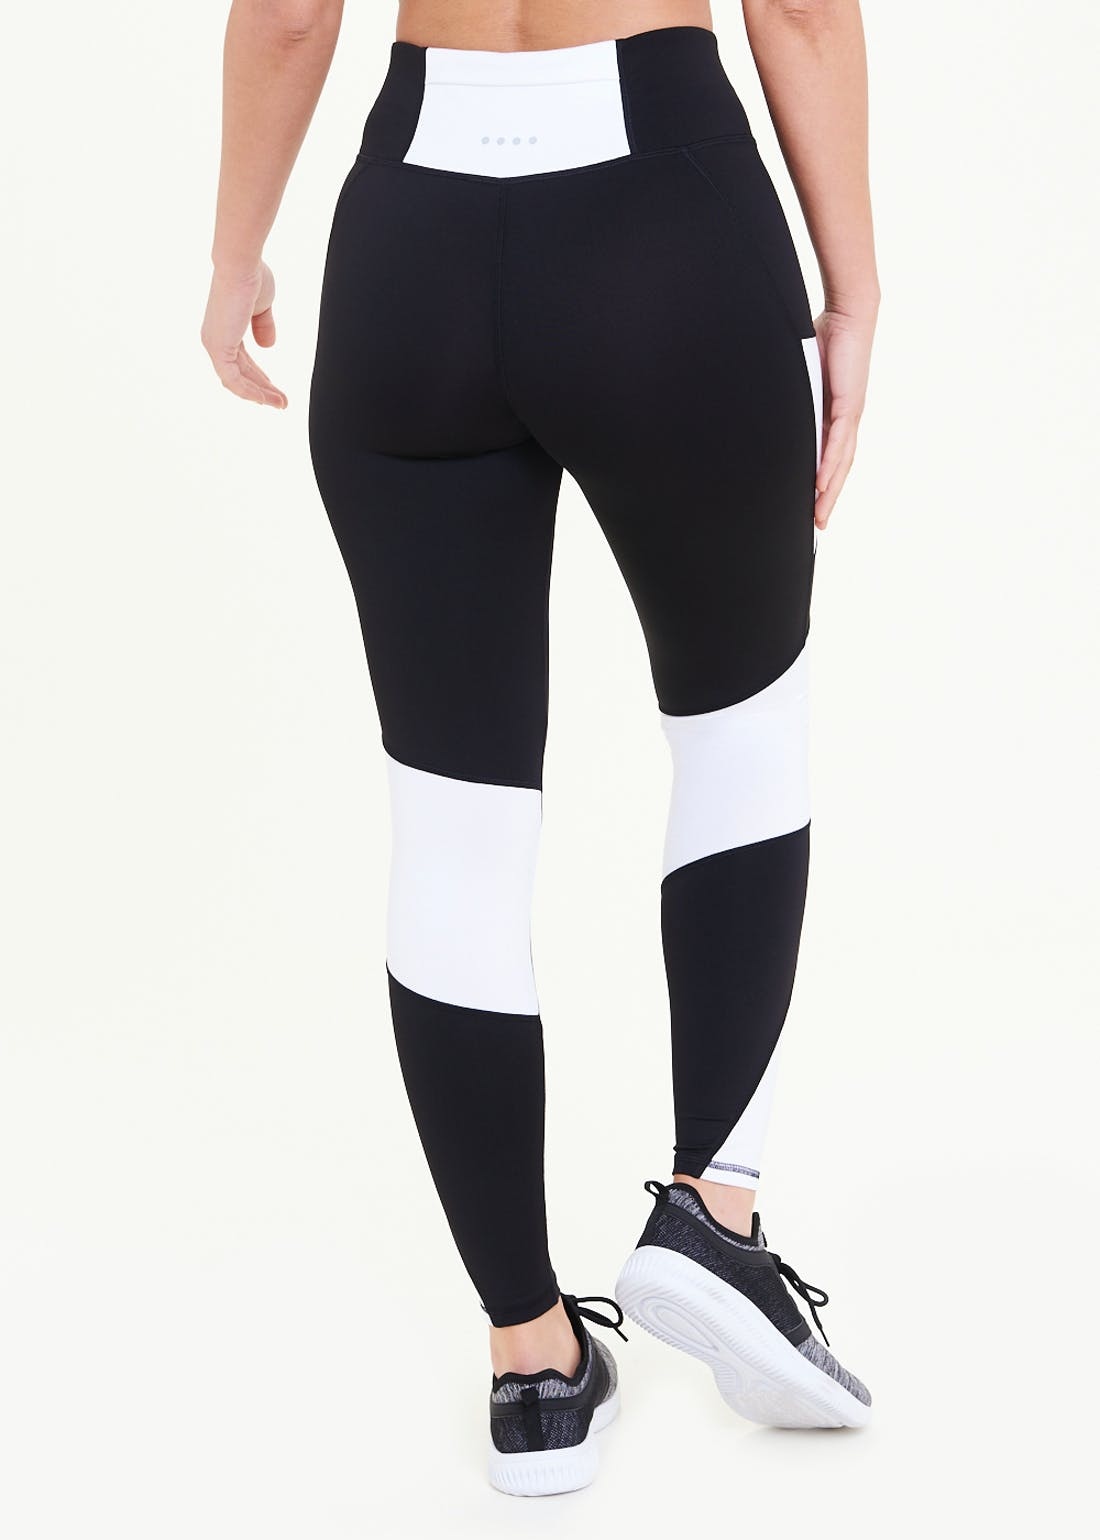 Souluxe Black & White Gym Leggings